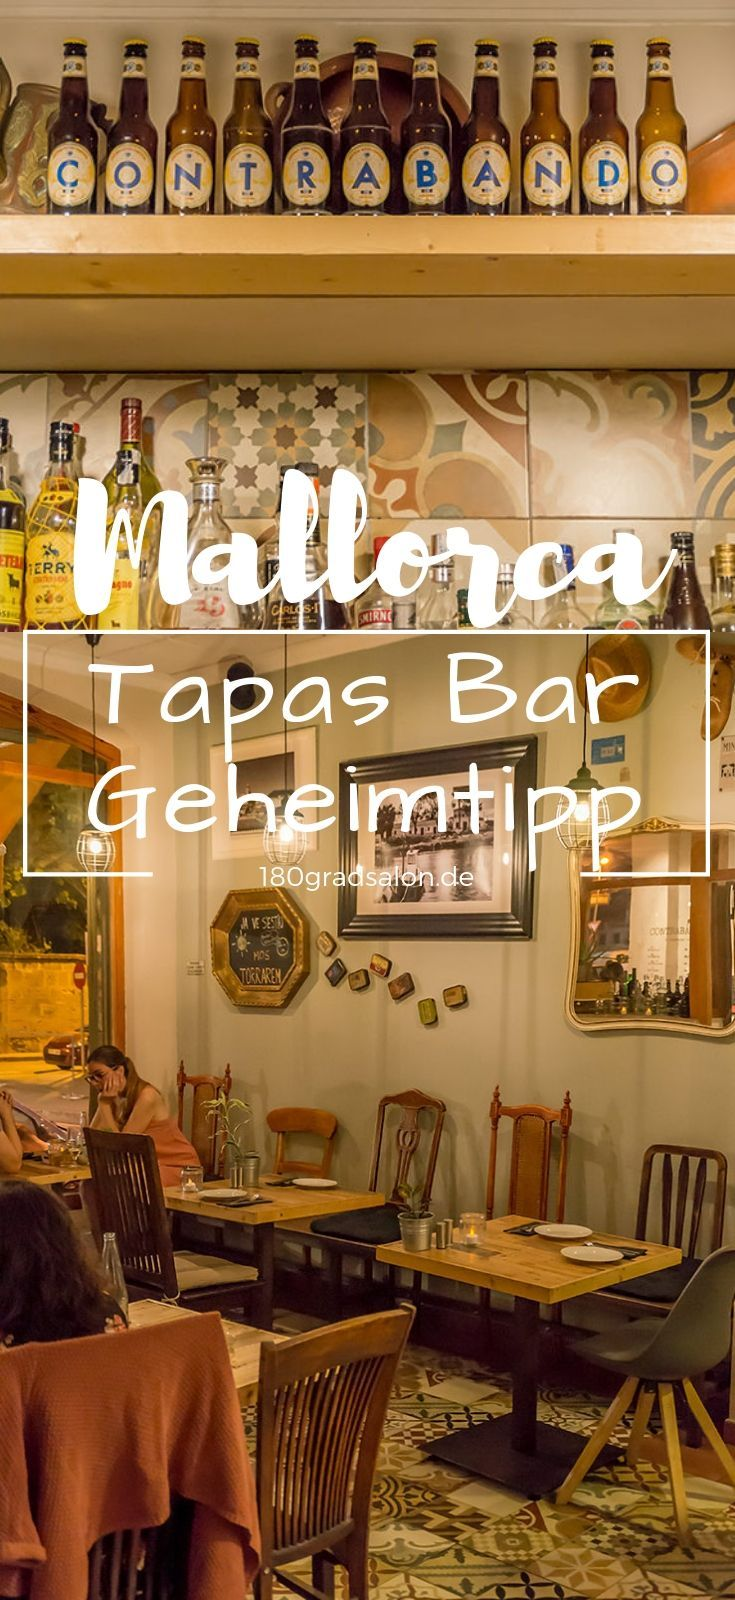 Mallorca Tapas Bar Contrabando in Llucmajor